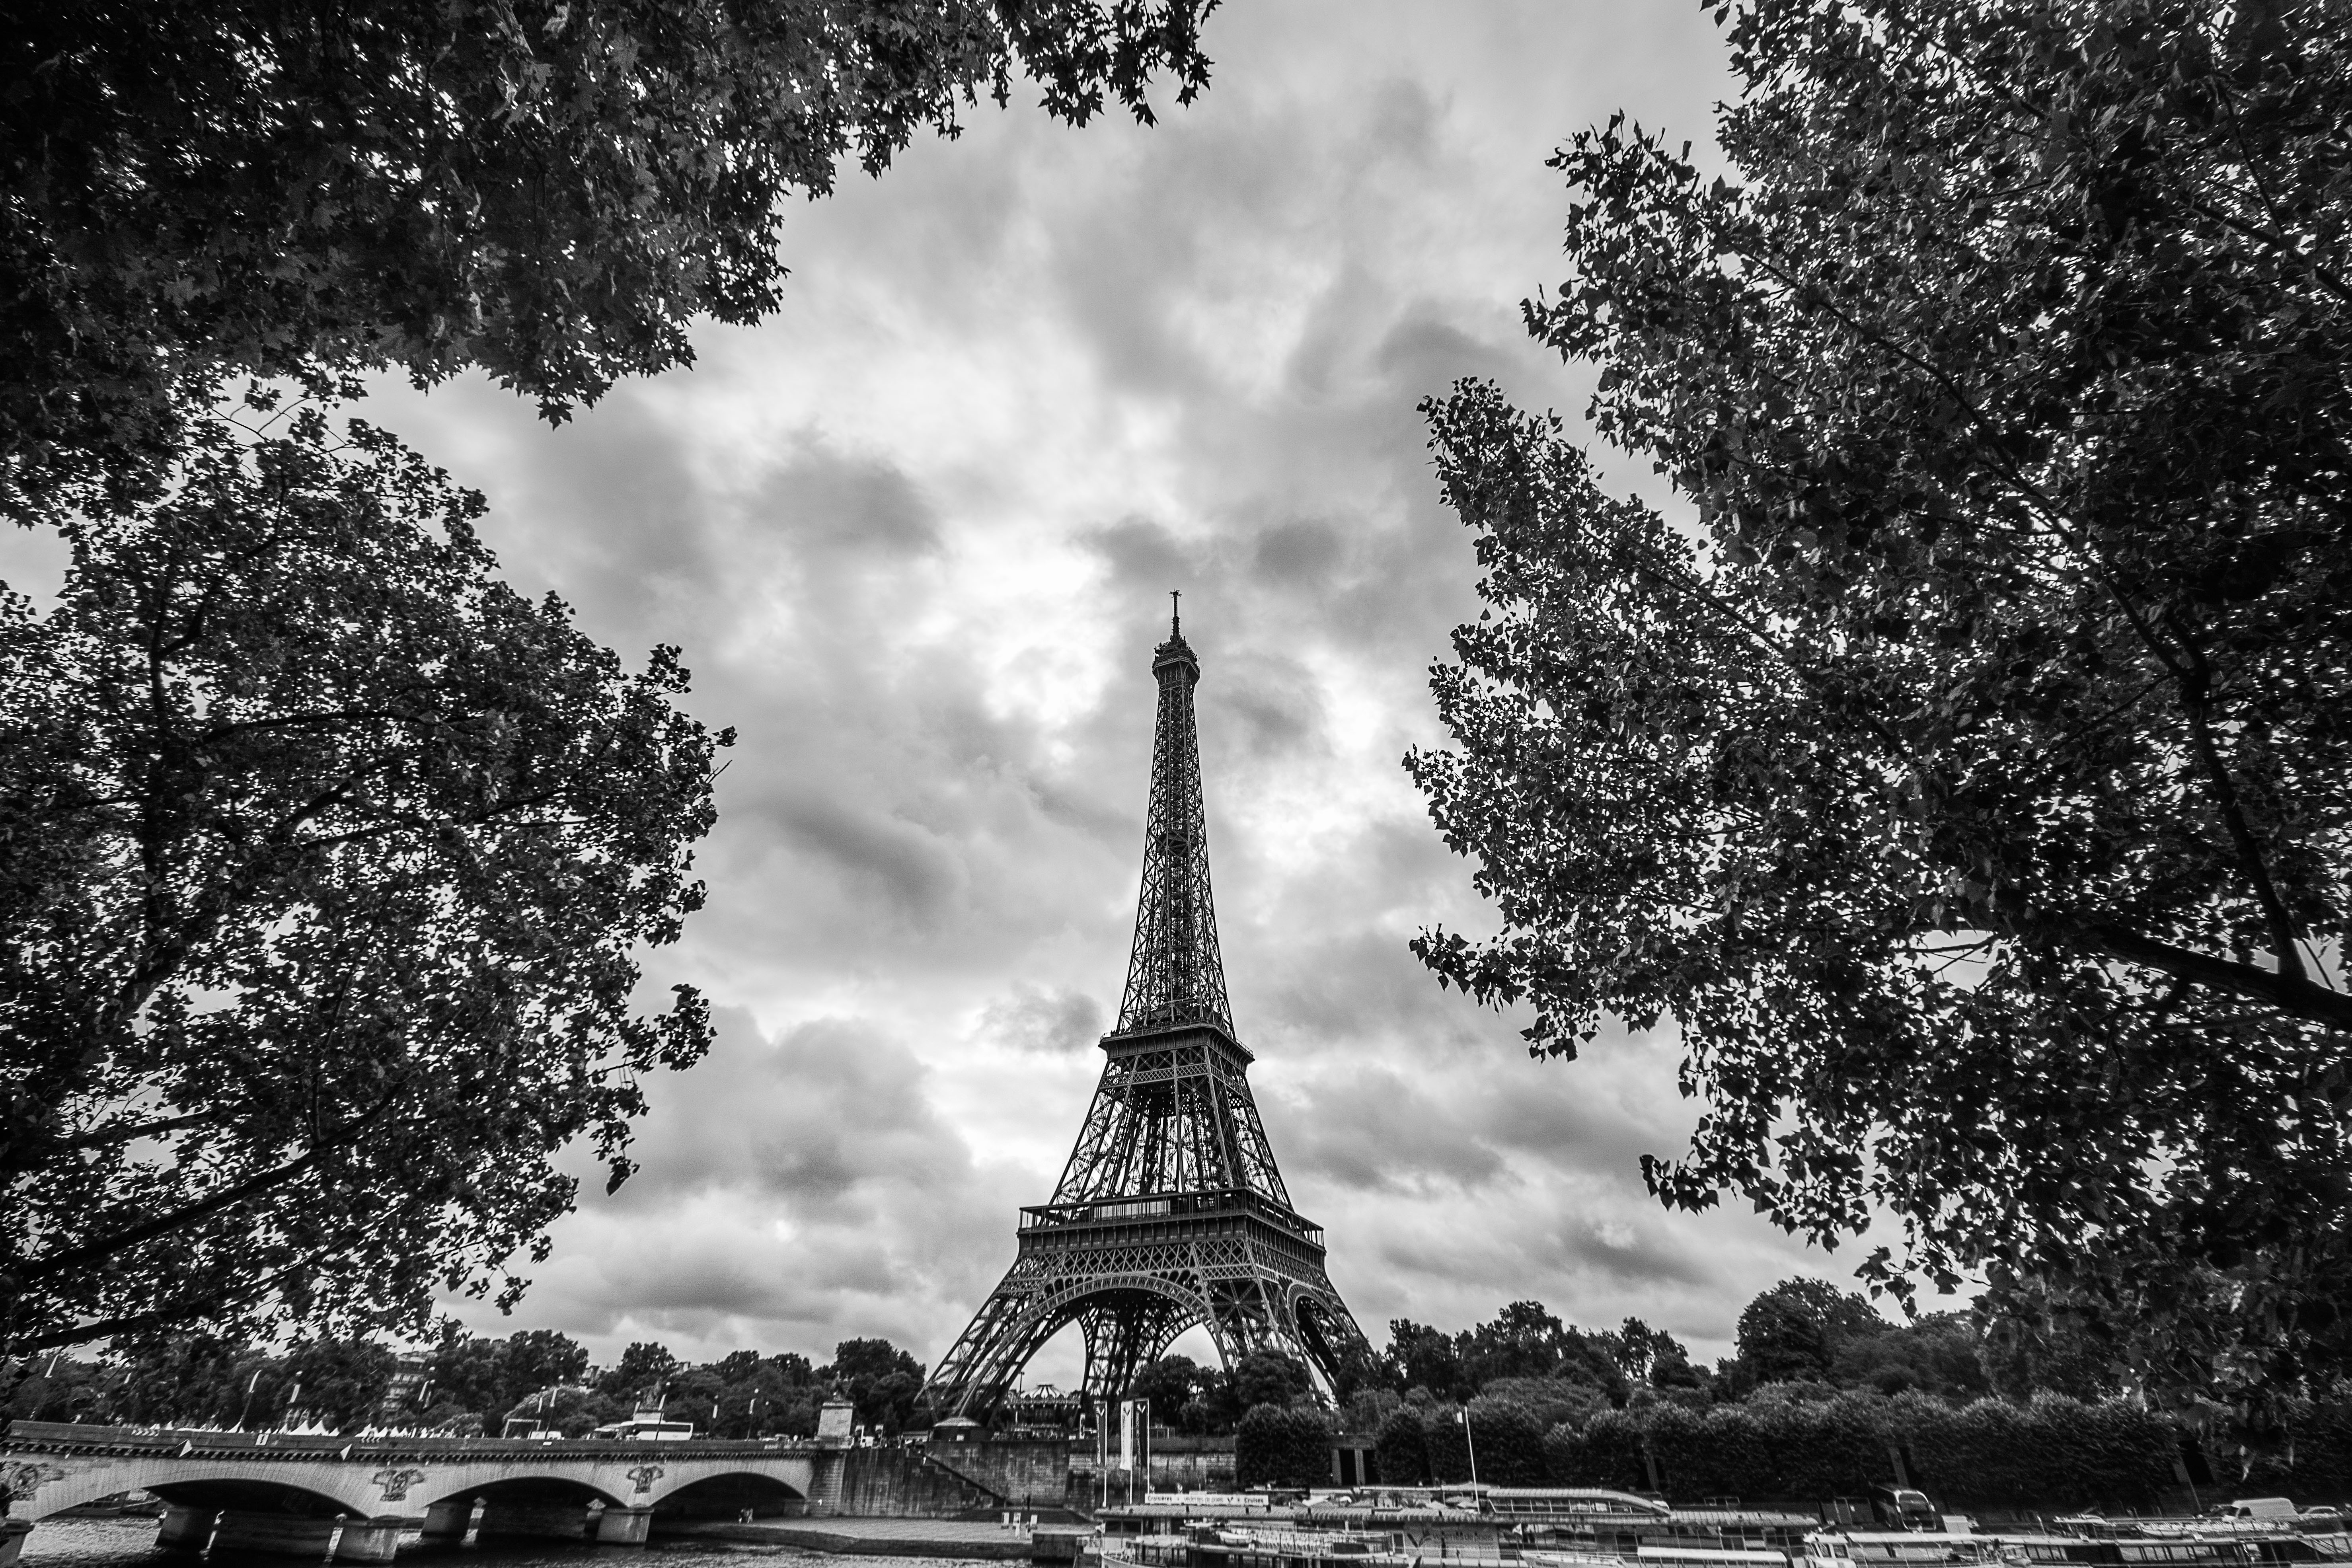 Another candidate from Paris photo shoot locations for Eiffel Tower by Travel Anubhav.